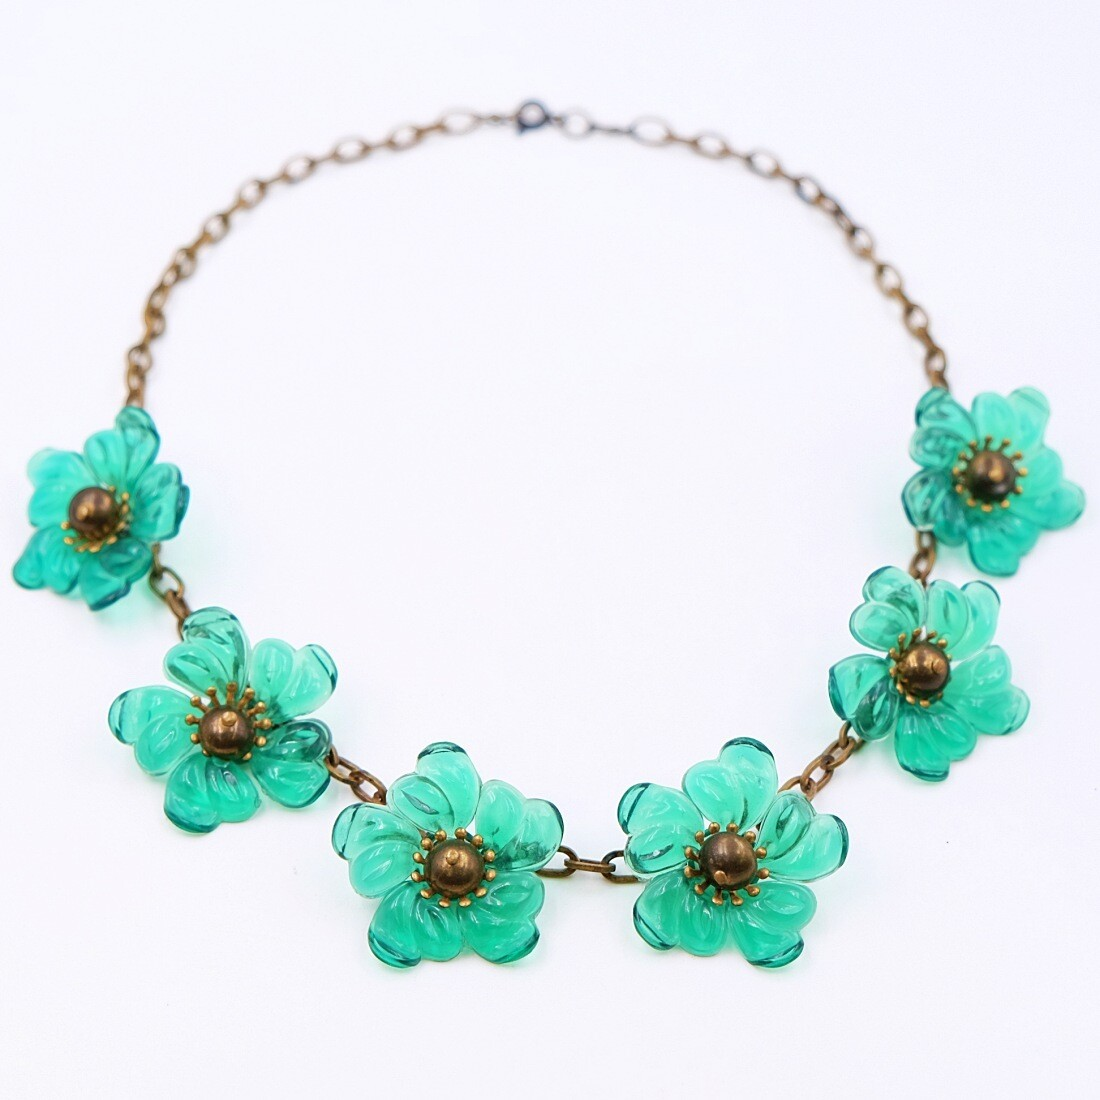 Antique Plastic Necklace With Green Flowers 1930s